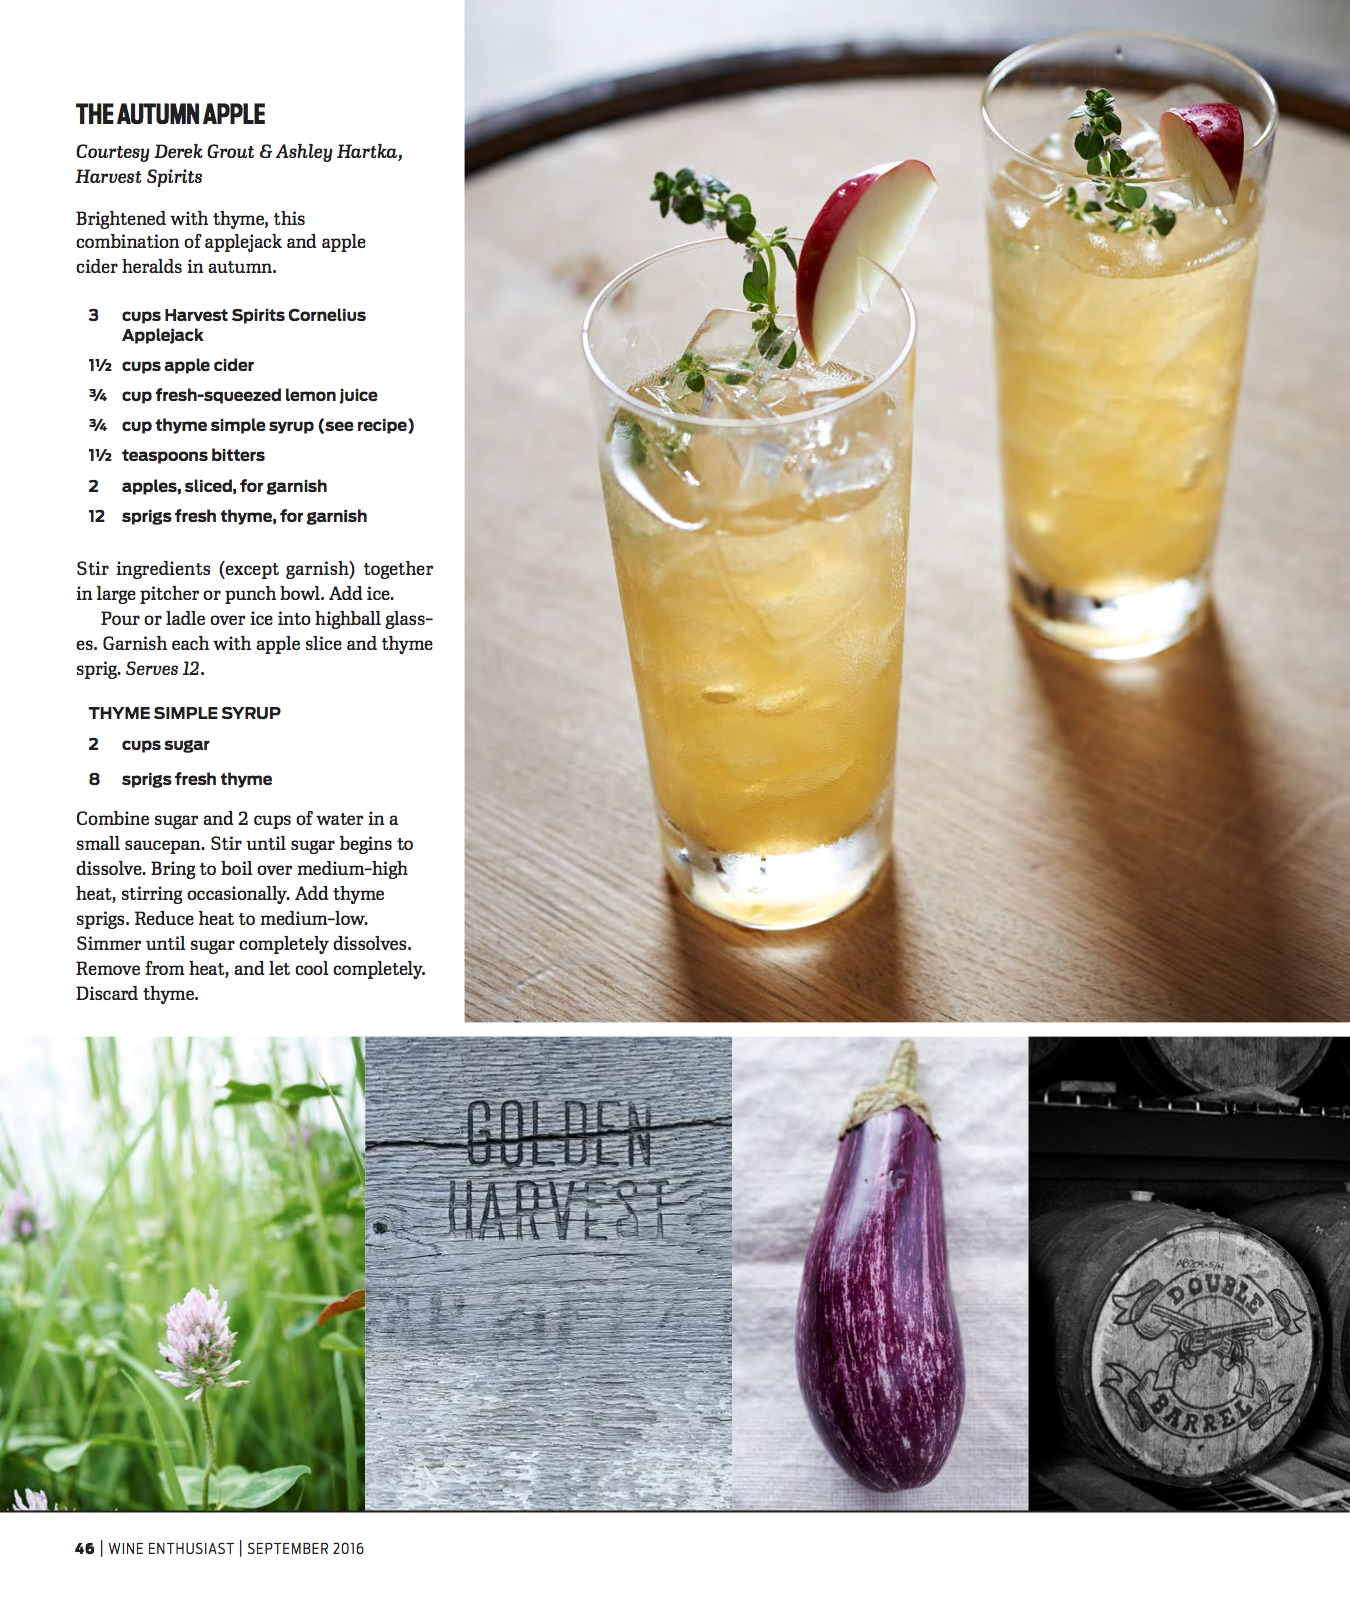 Wine Enthusiast Sept 2016 cocktail